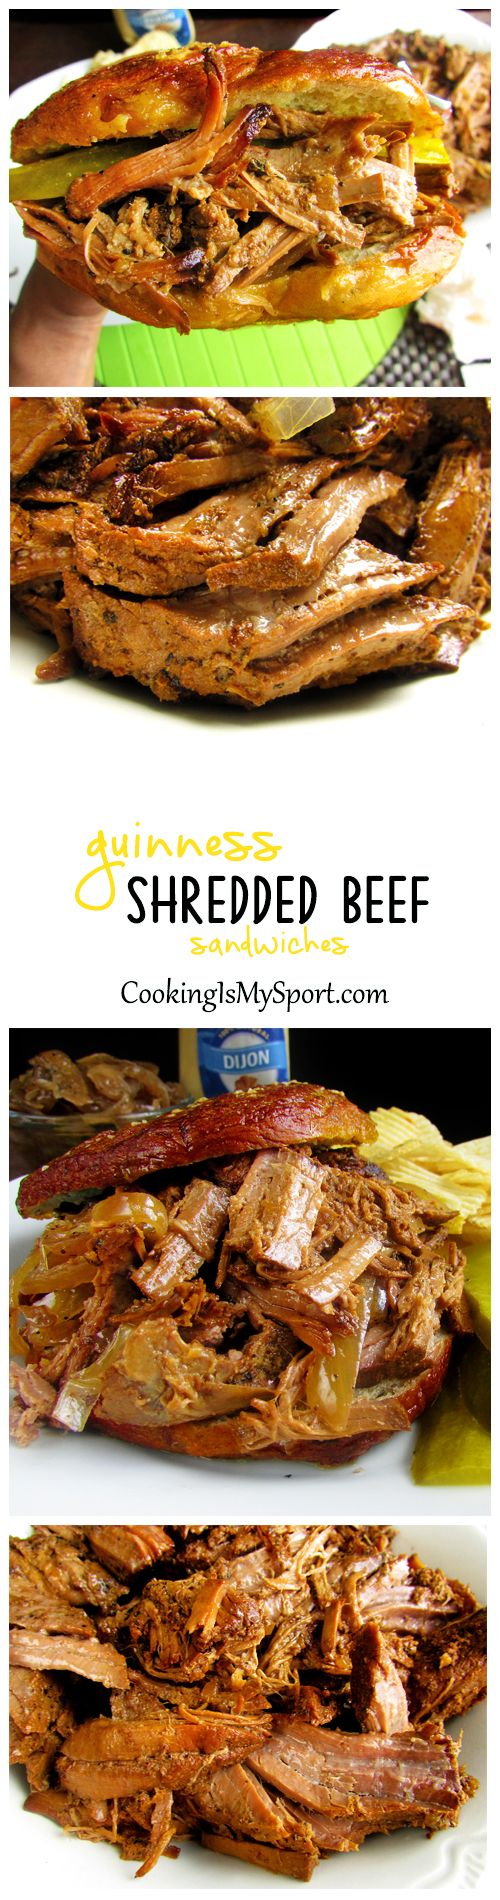 Guinness Shredded Beef Sandwiches